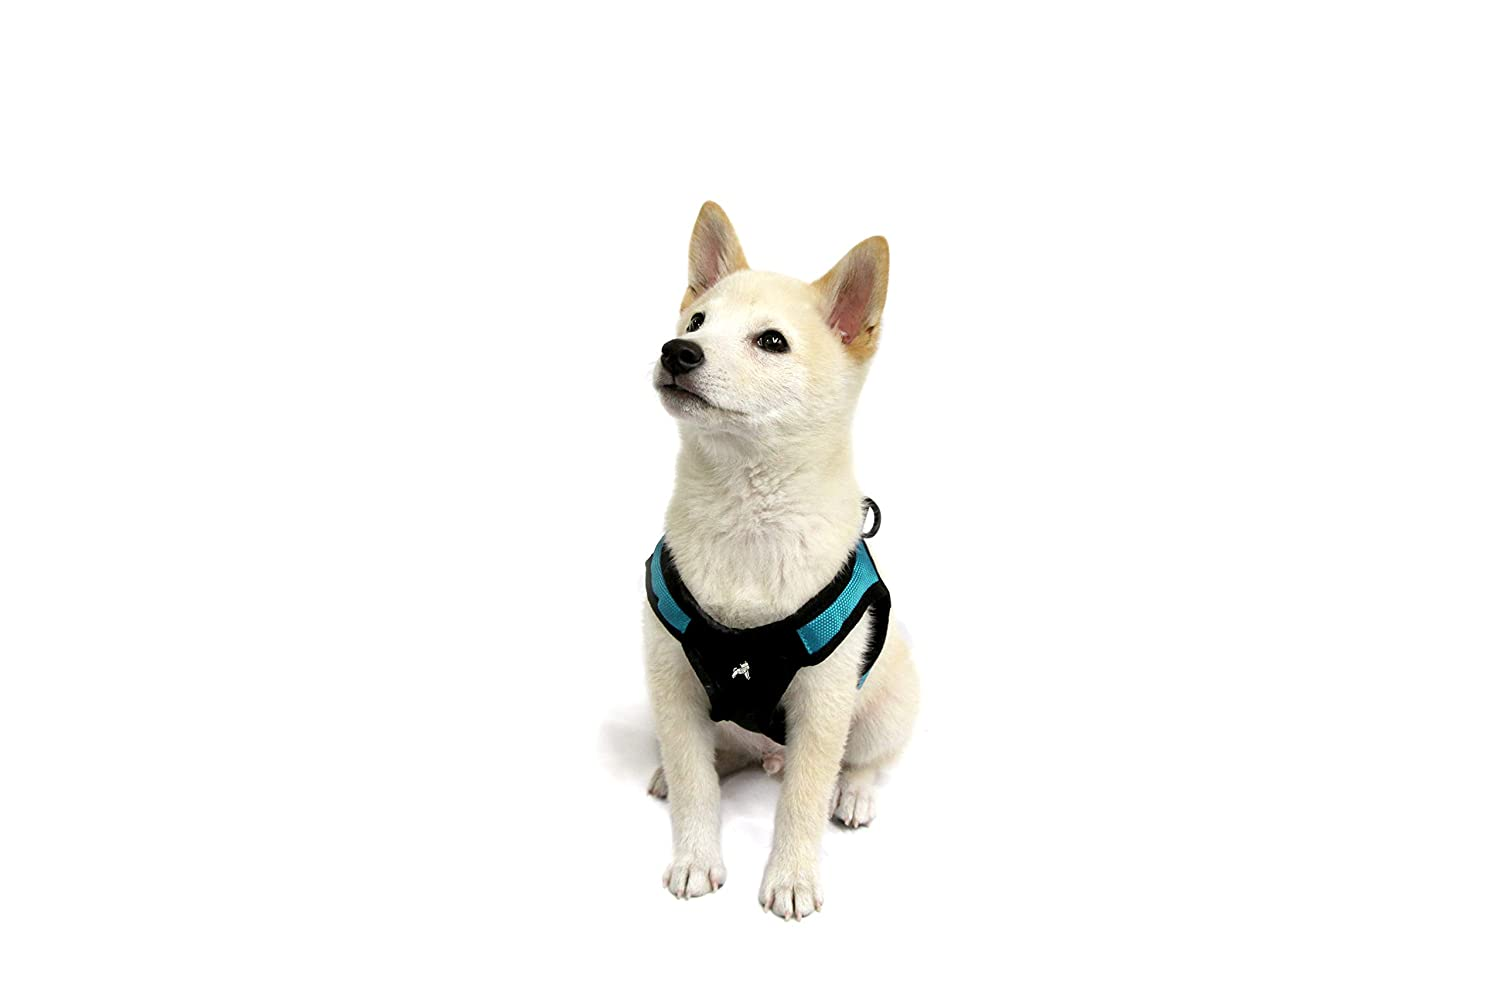 Gooby Escape Free Easy Fit Harness, Small Dog Step-in Harness for Dogs That Like to Escape Their Harness, Turquoise, X-Small